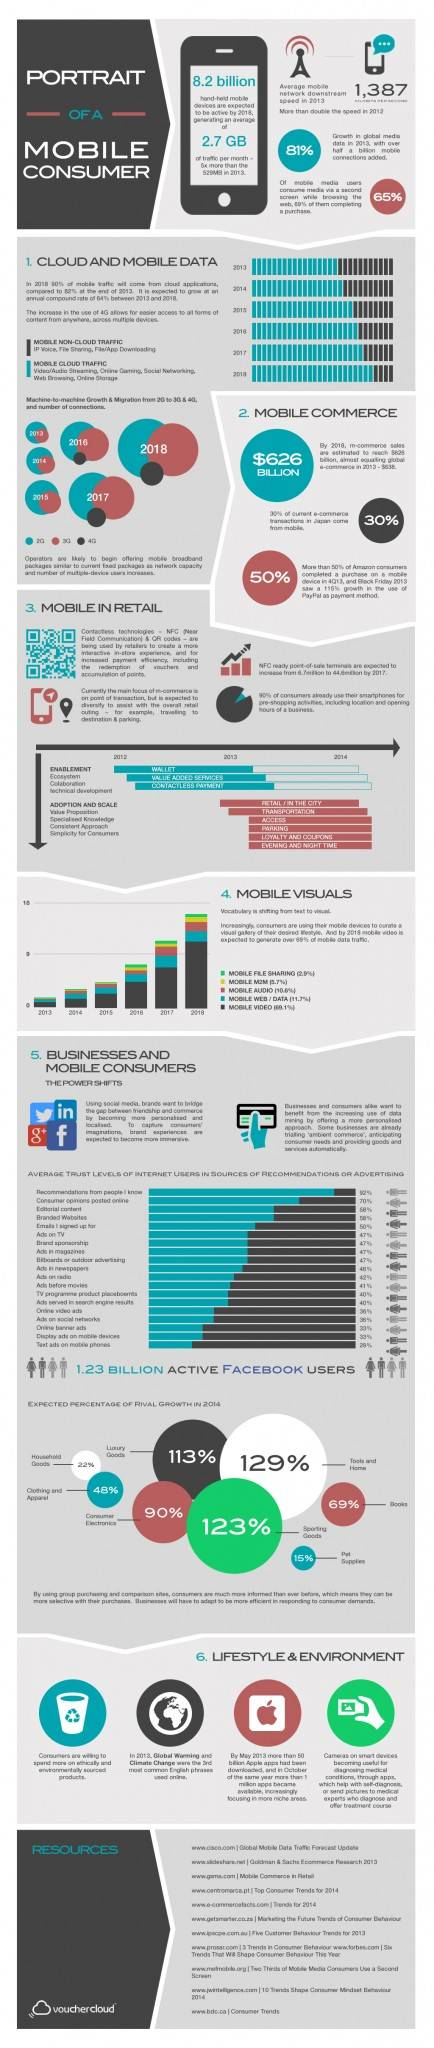 Mobile Consumer infographic